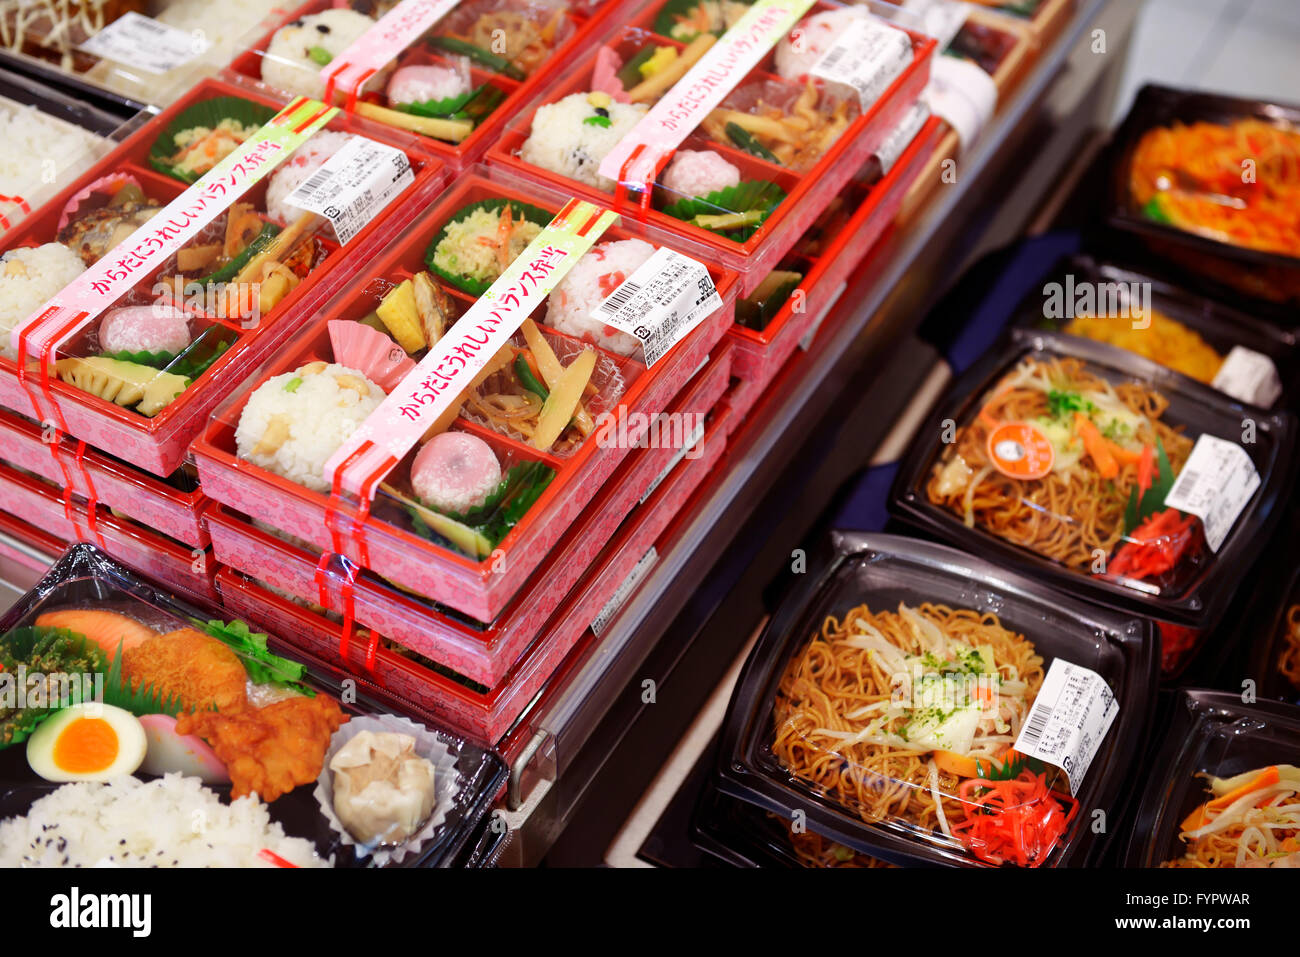 Packaged convenience food in a Japanese supermarket, Tokyo, Japan - Stock Image